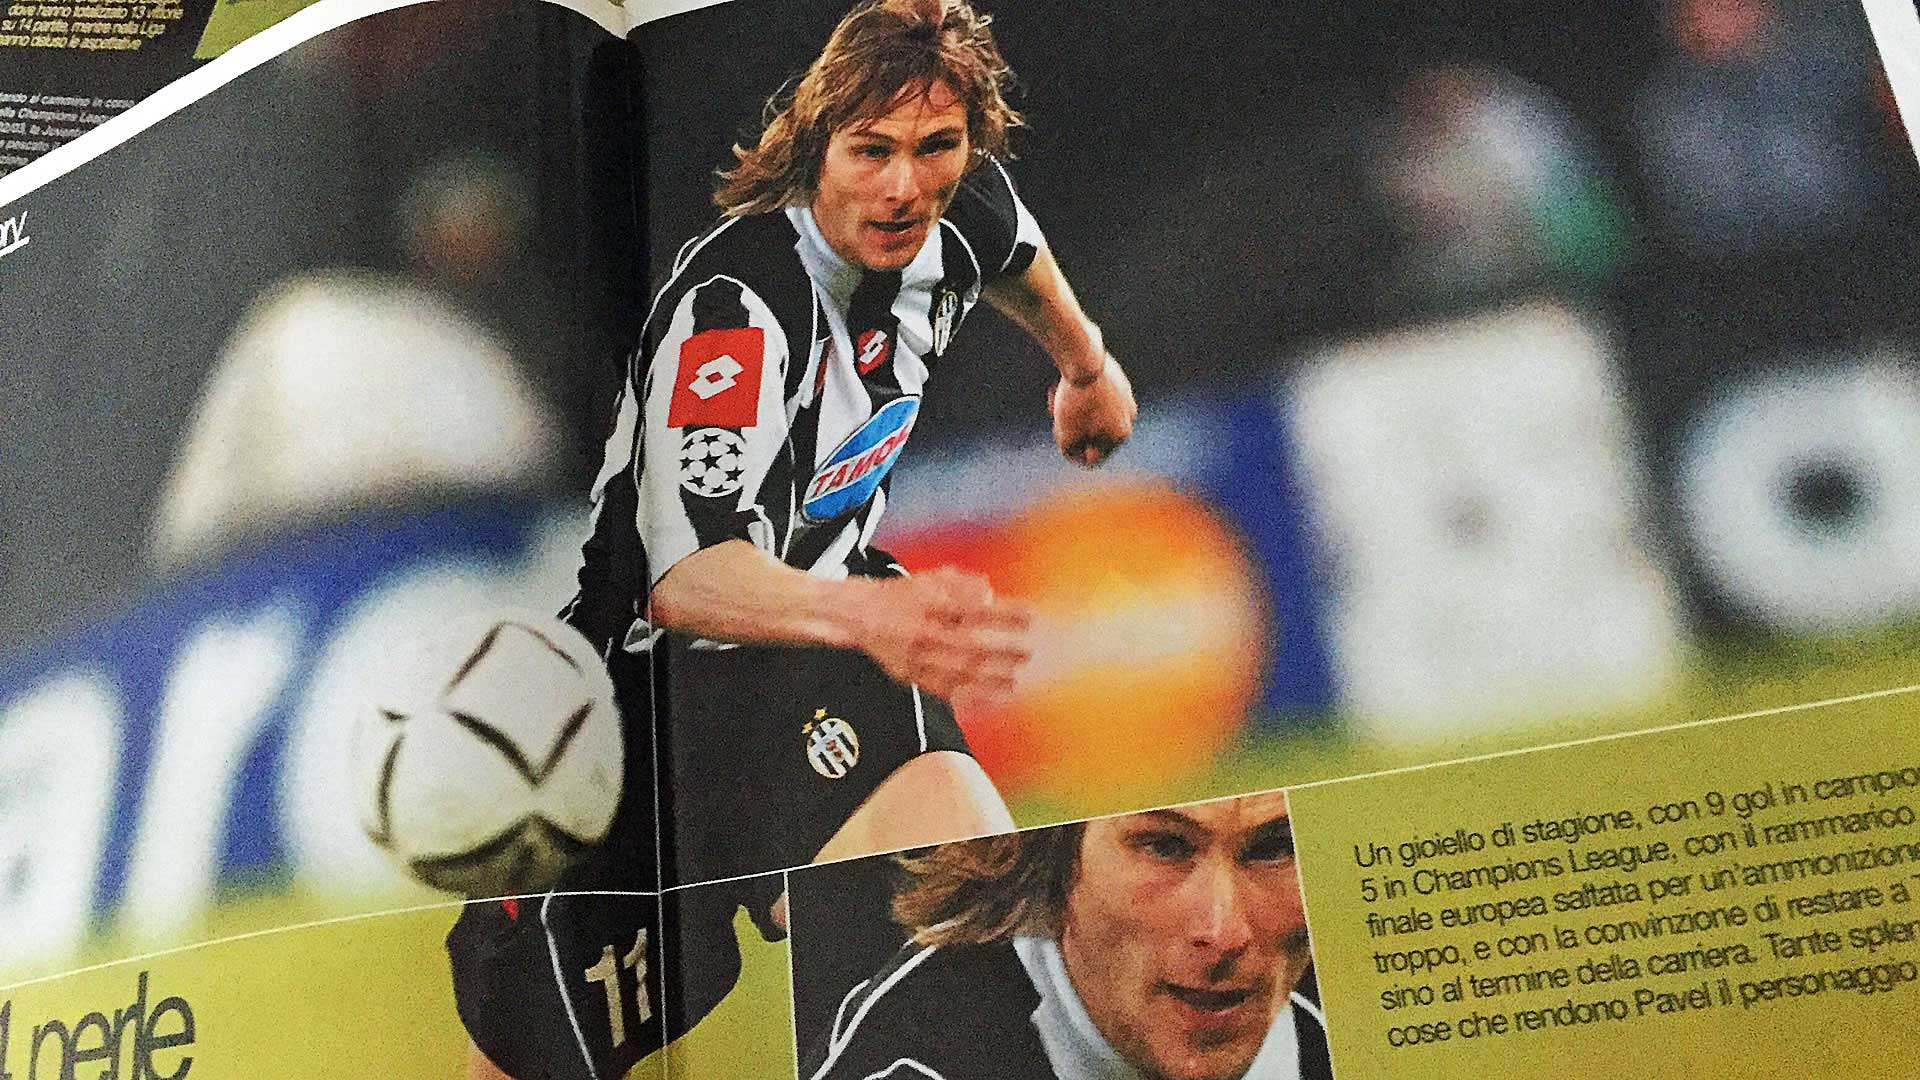 14 years after Pavel Nedved